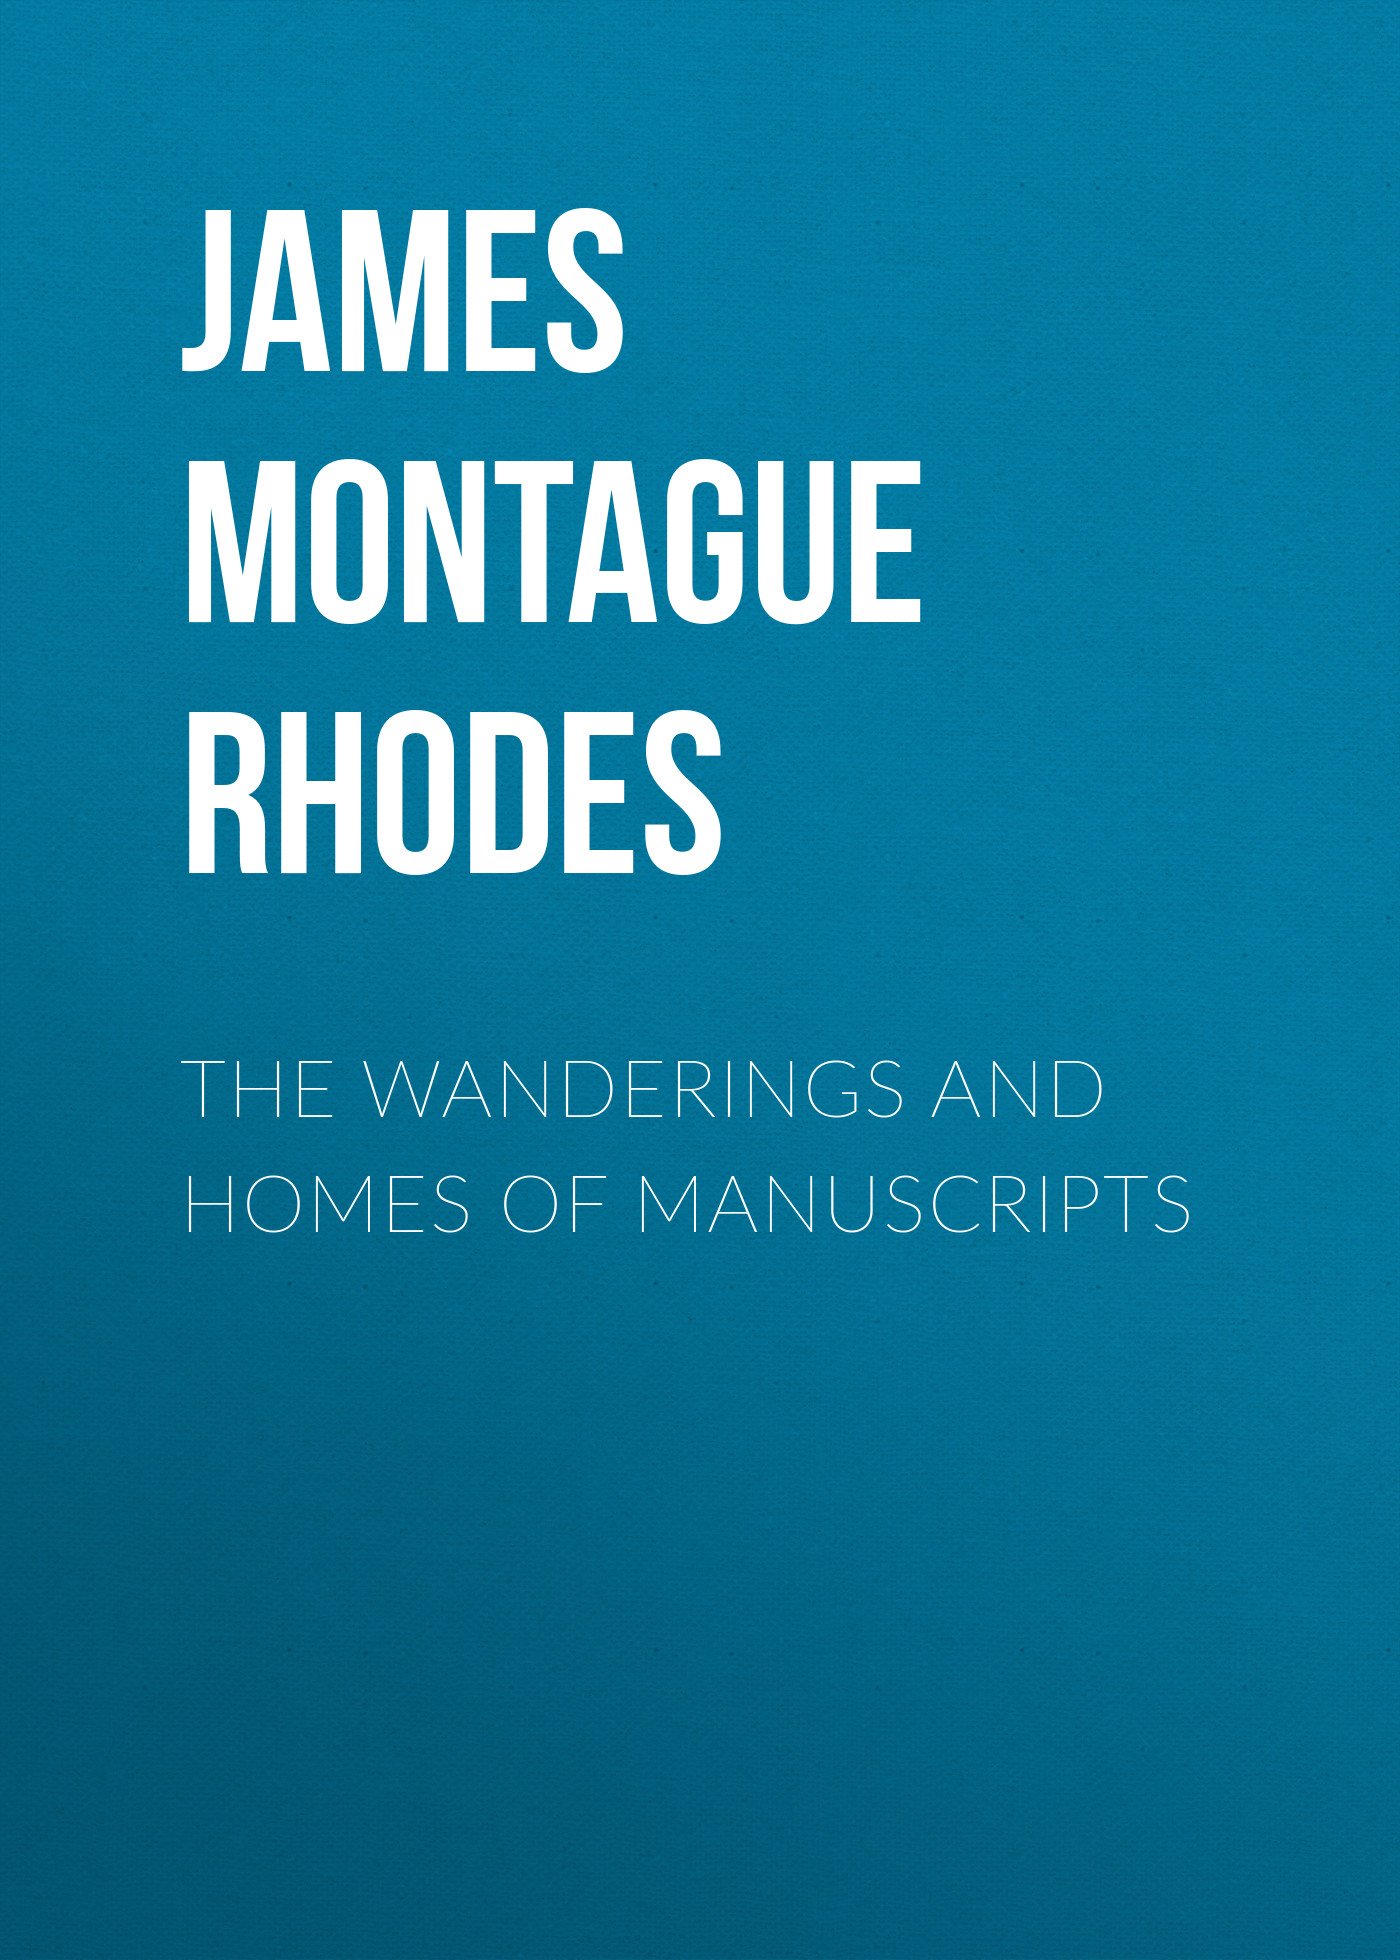 лучшая цена James Montague Rhodes The Wanderings and Homes of Manuscripts